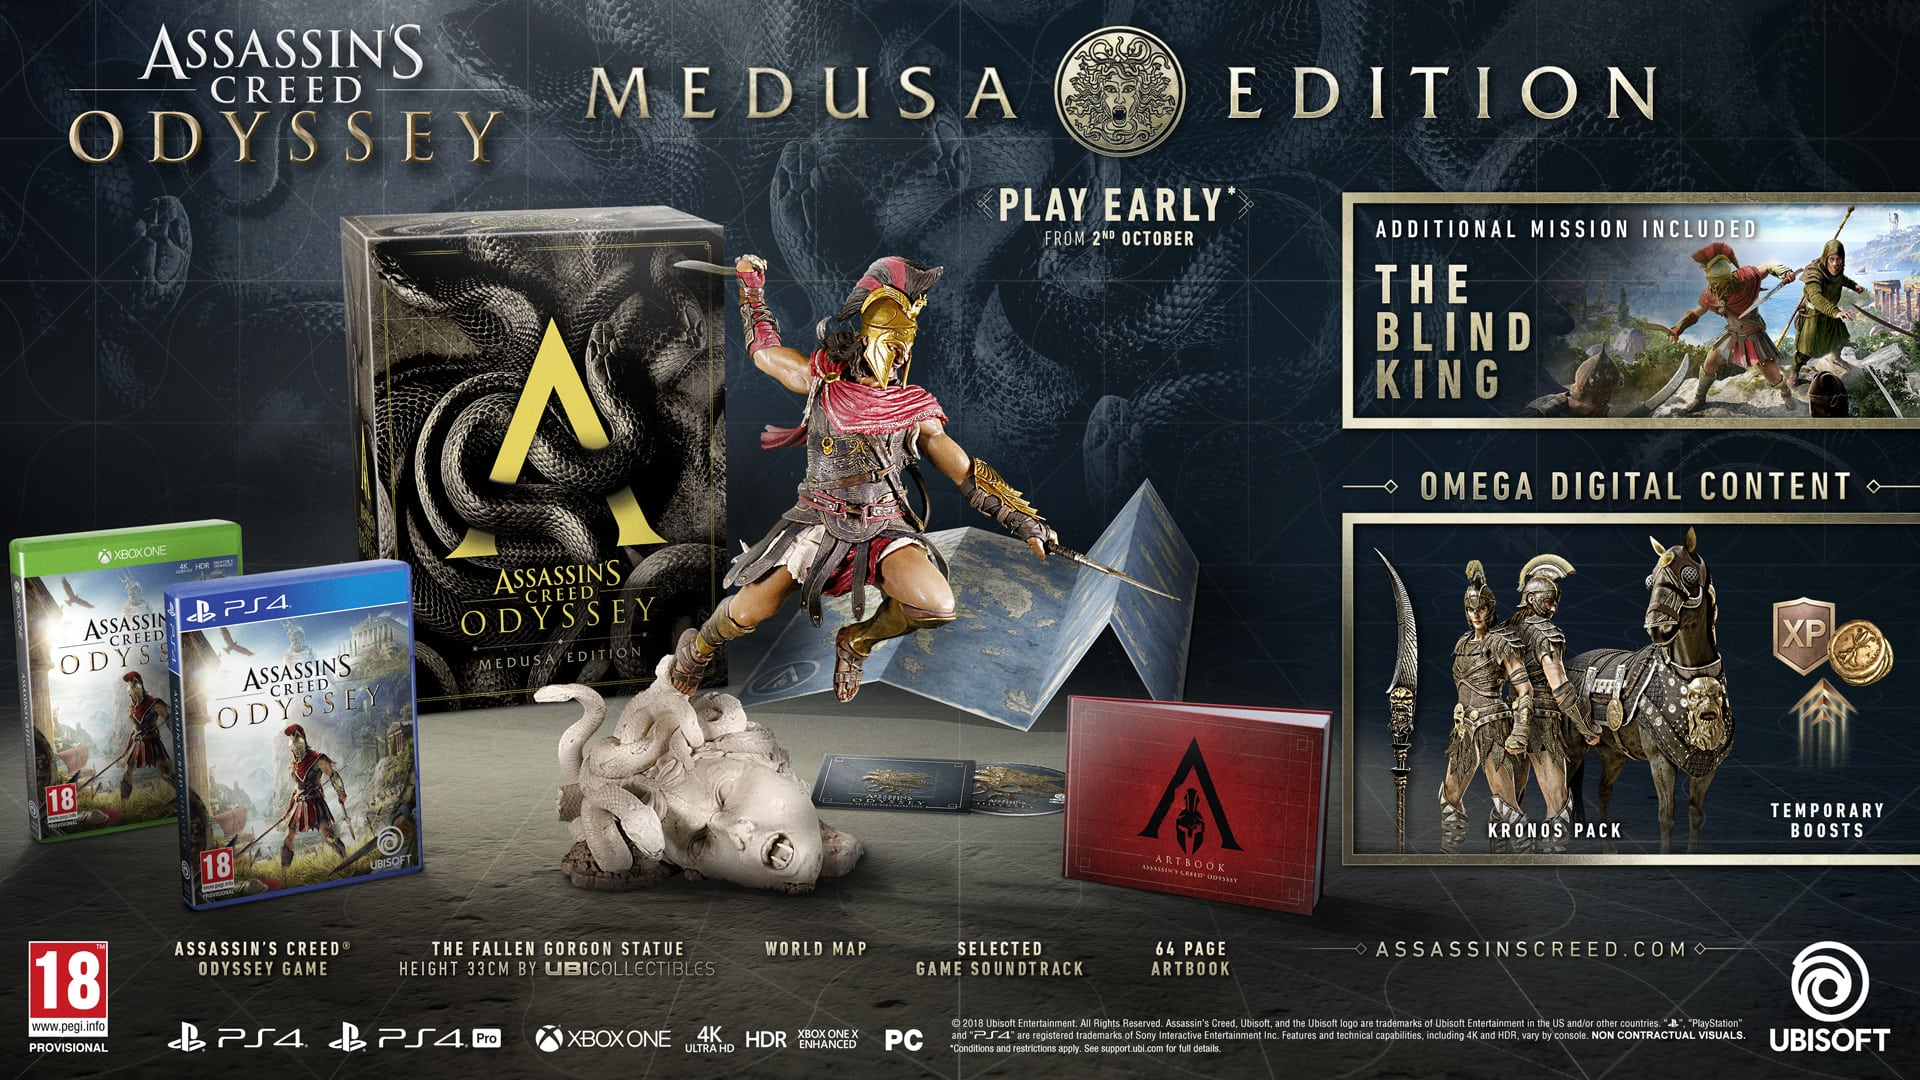 Assassins Creed Odyssey Medusa Edition On Ps4 Game